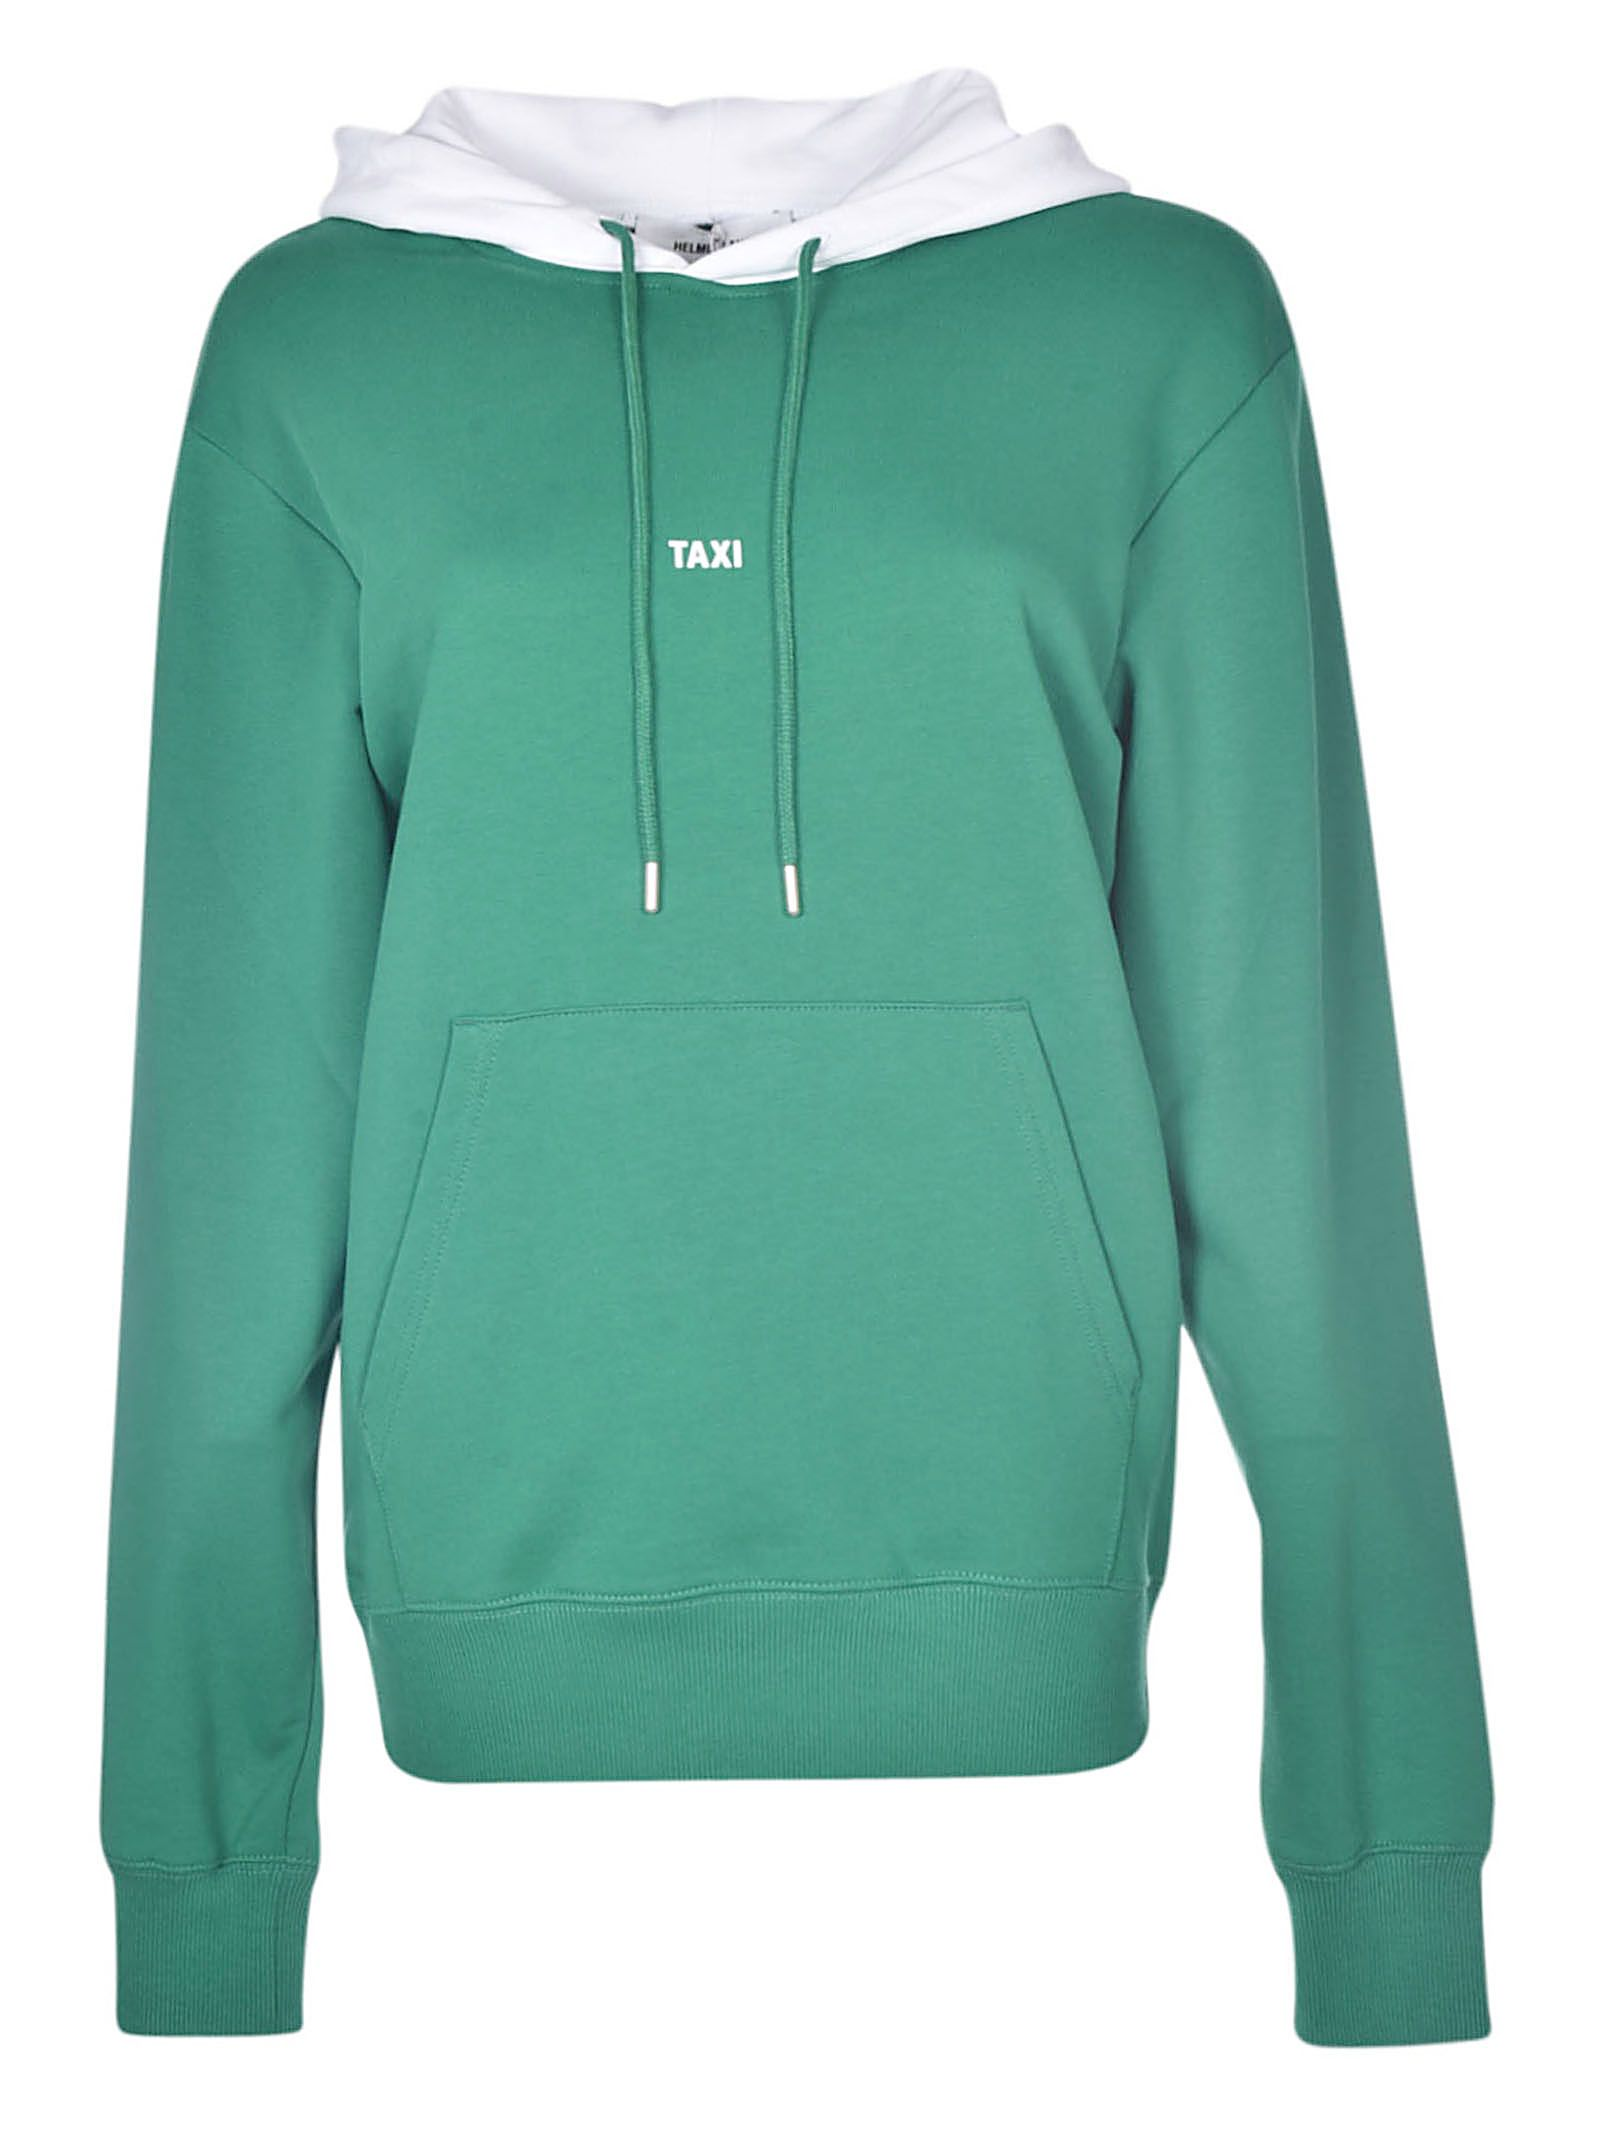 Taxi Campaign Tokyo Hoodie, Green